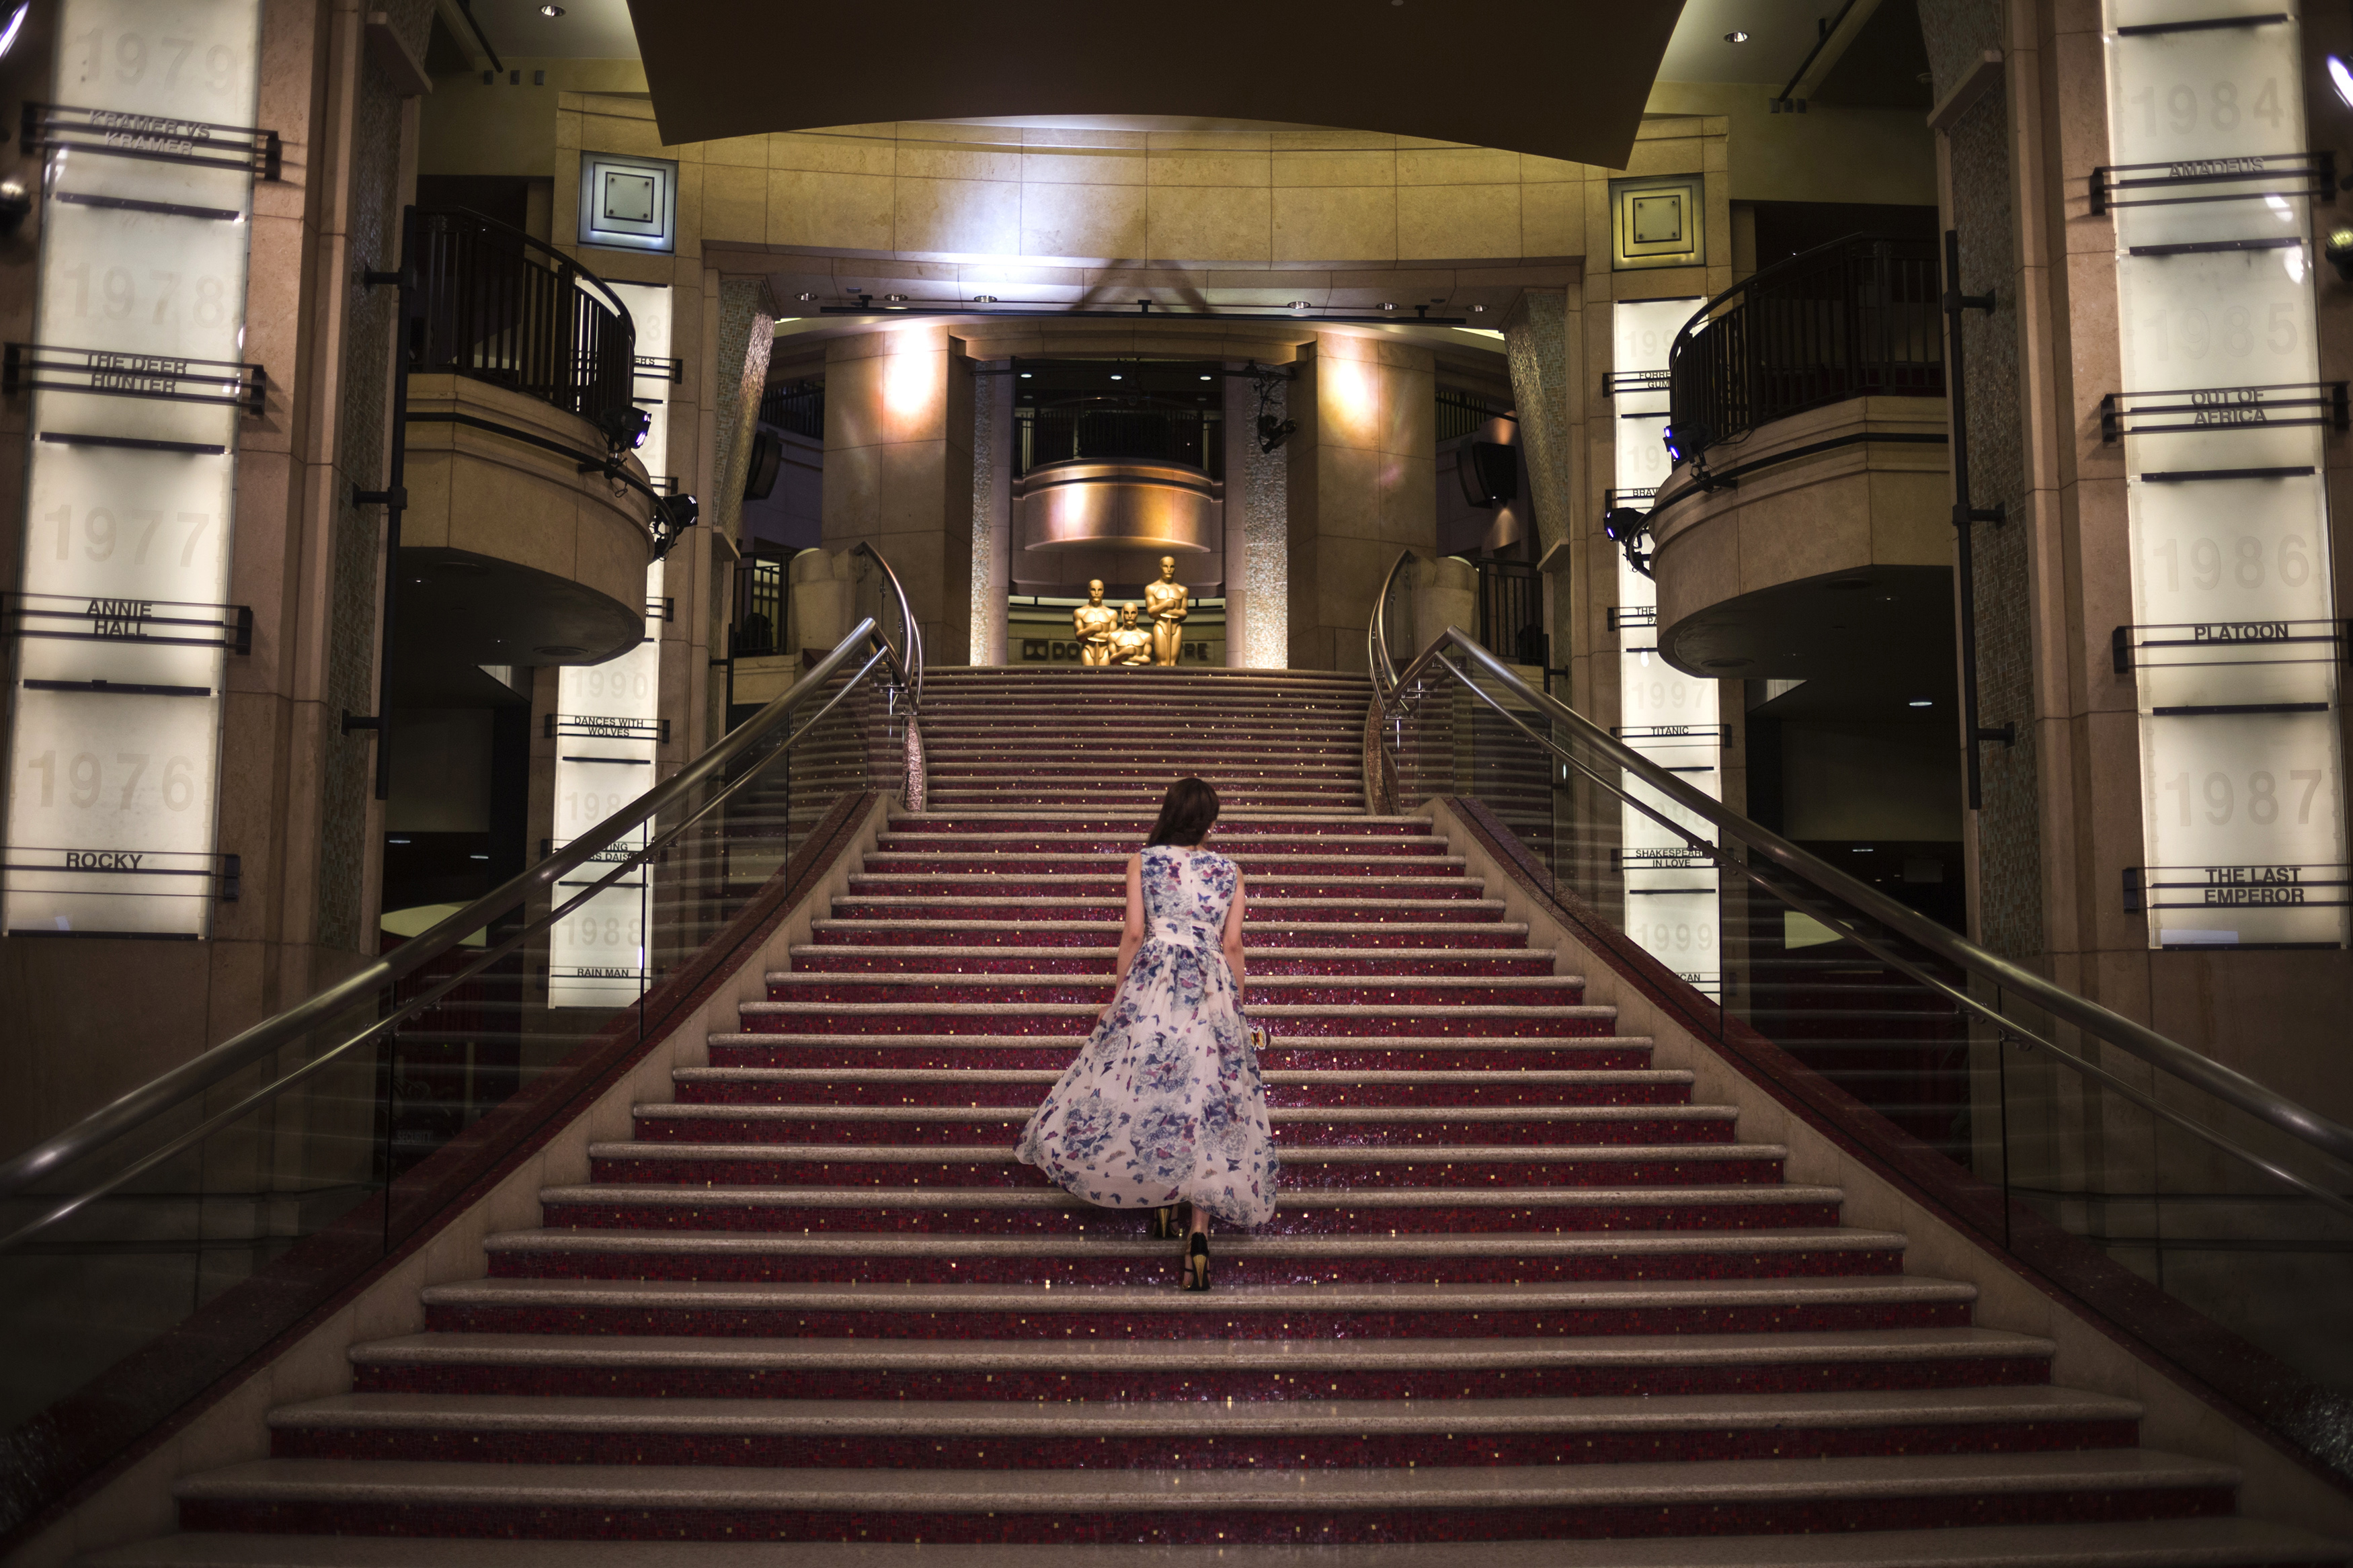 A woman walks up the stairs to the Dolby Theatre in Hollywood, hours before arrivals for the Academy Awards in Los Angeles, California February 22, 2015. Photo by REUTERS/Adrees Latif